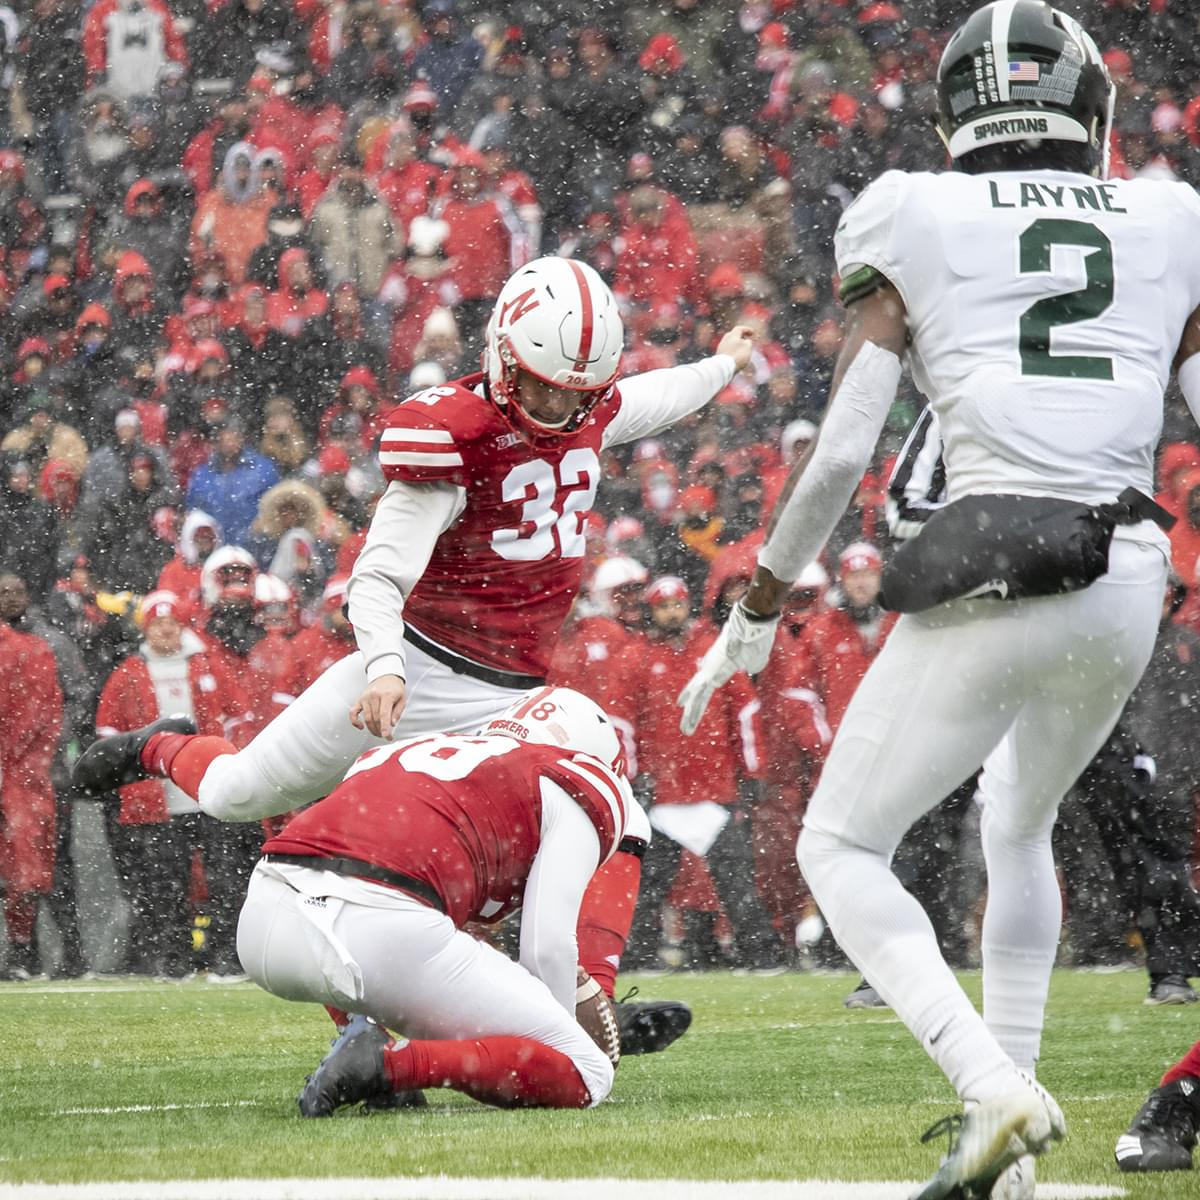 Pickering's Field Goals Lift Nebraska Over Michigan State 9-6